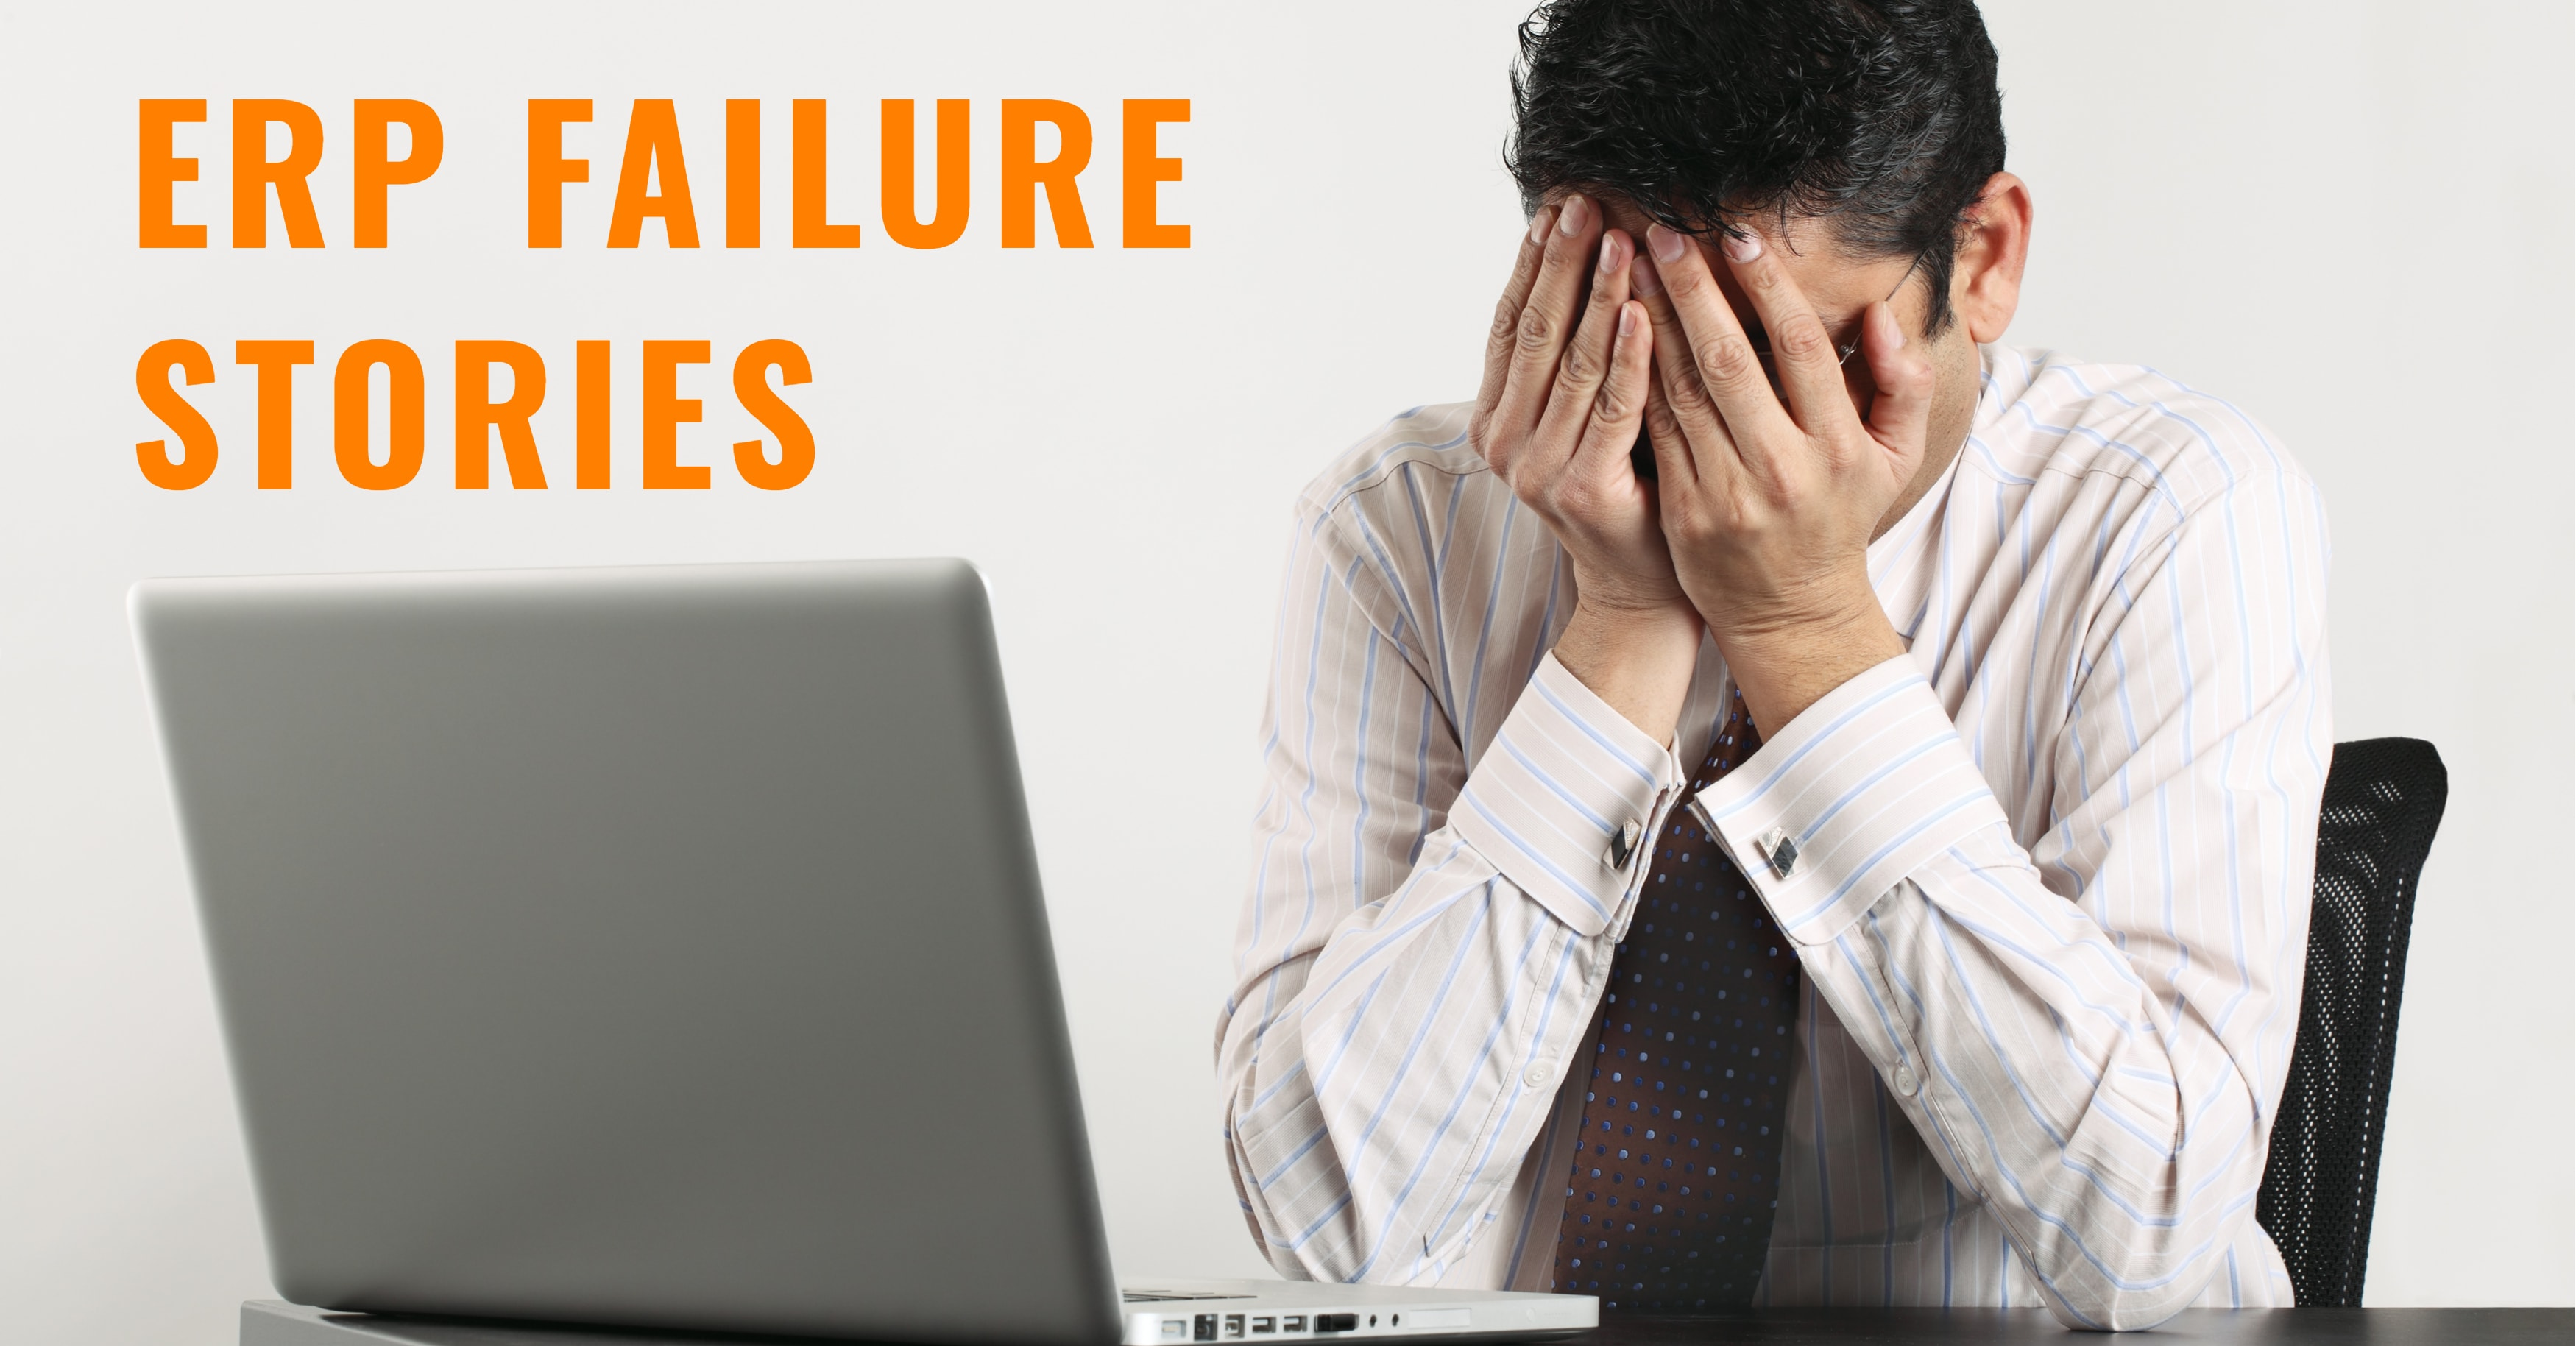 4 ERP Failure Stories and How to Avoid Becoming One